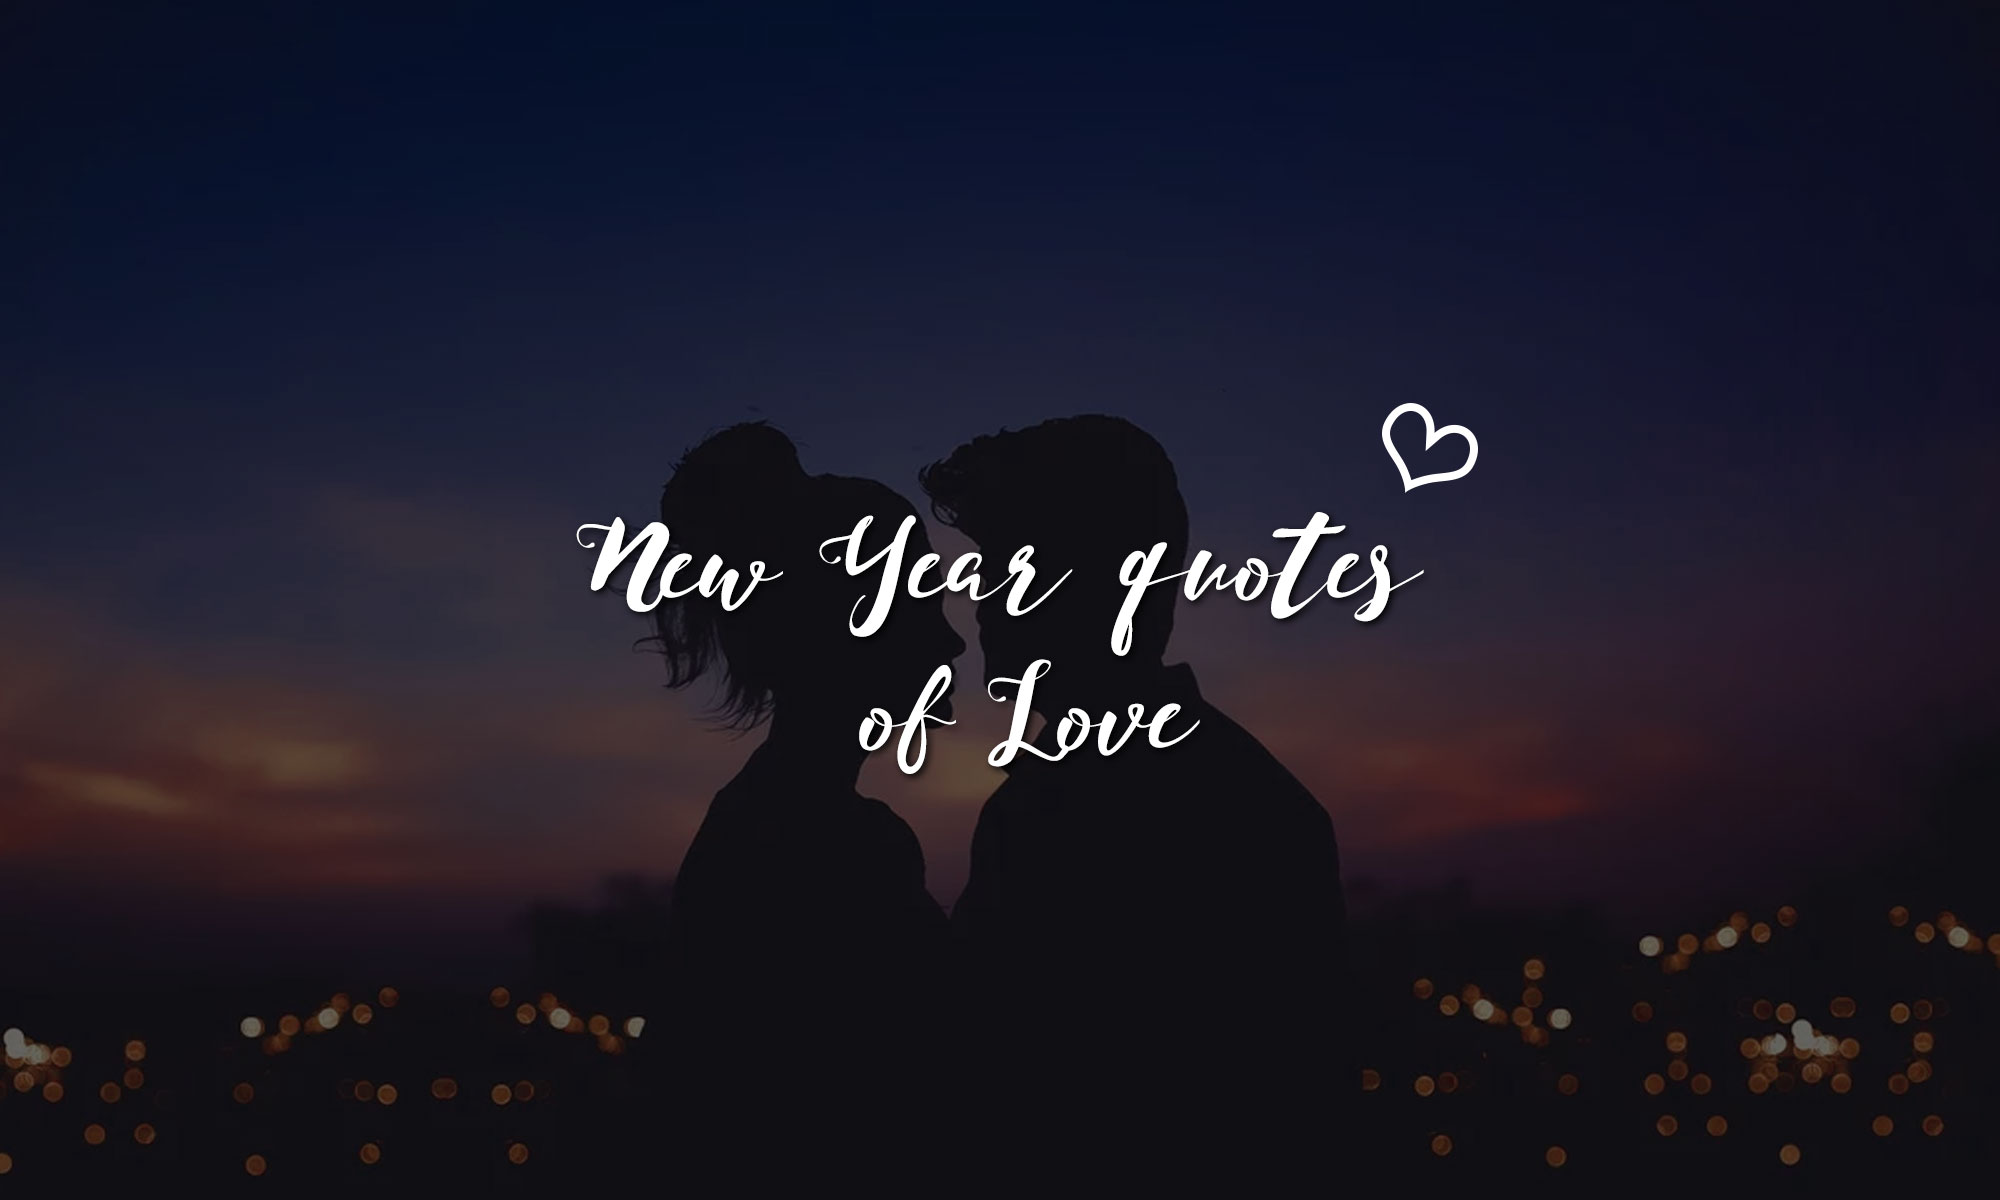 New Year quotes of Love